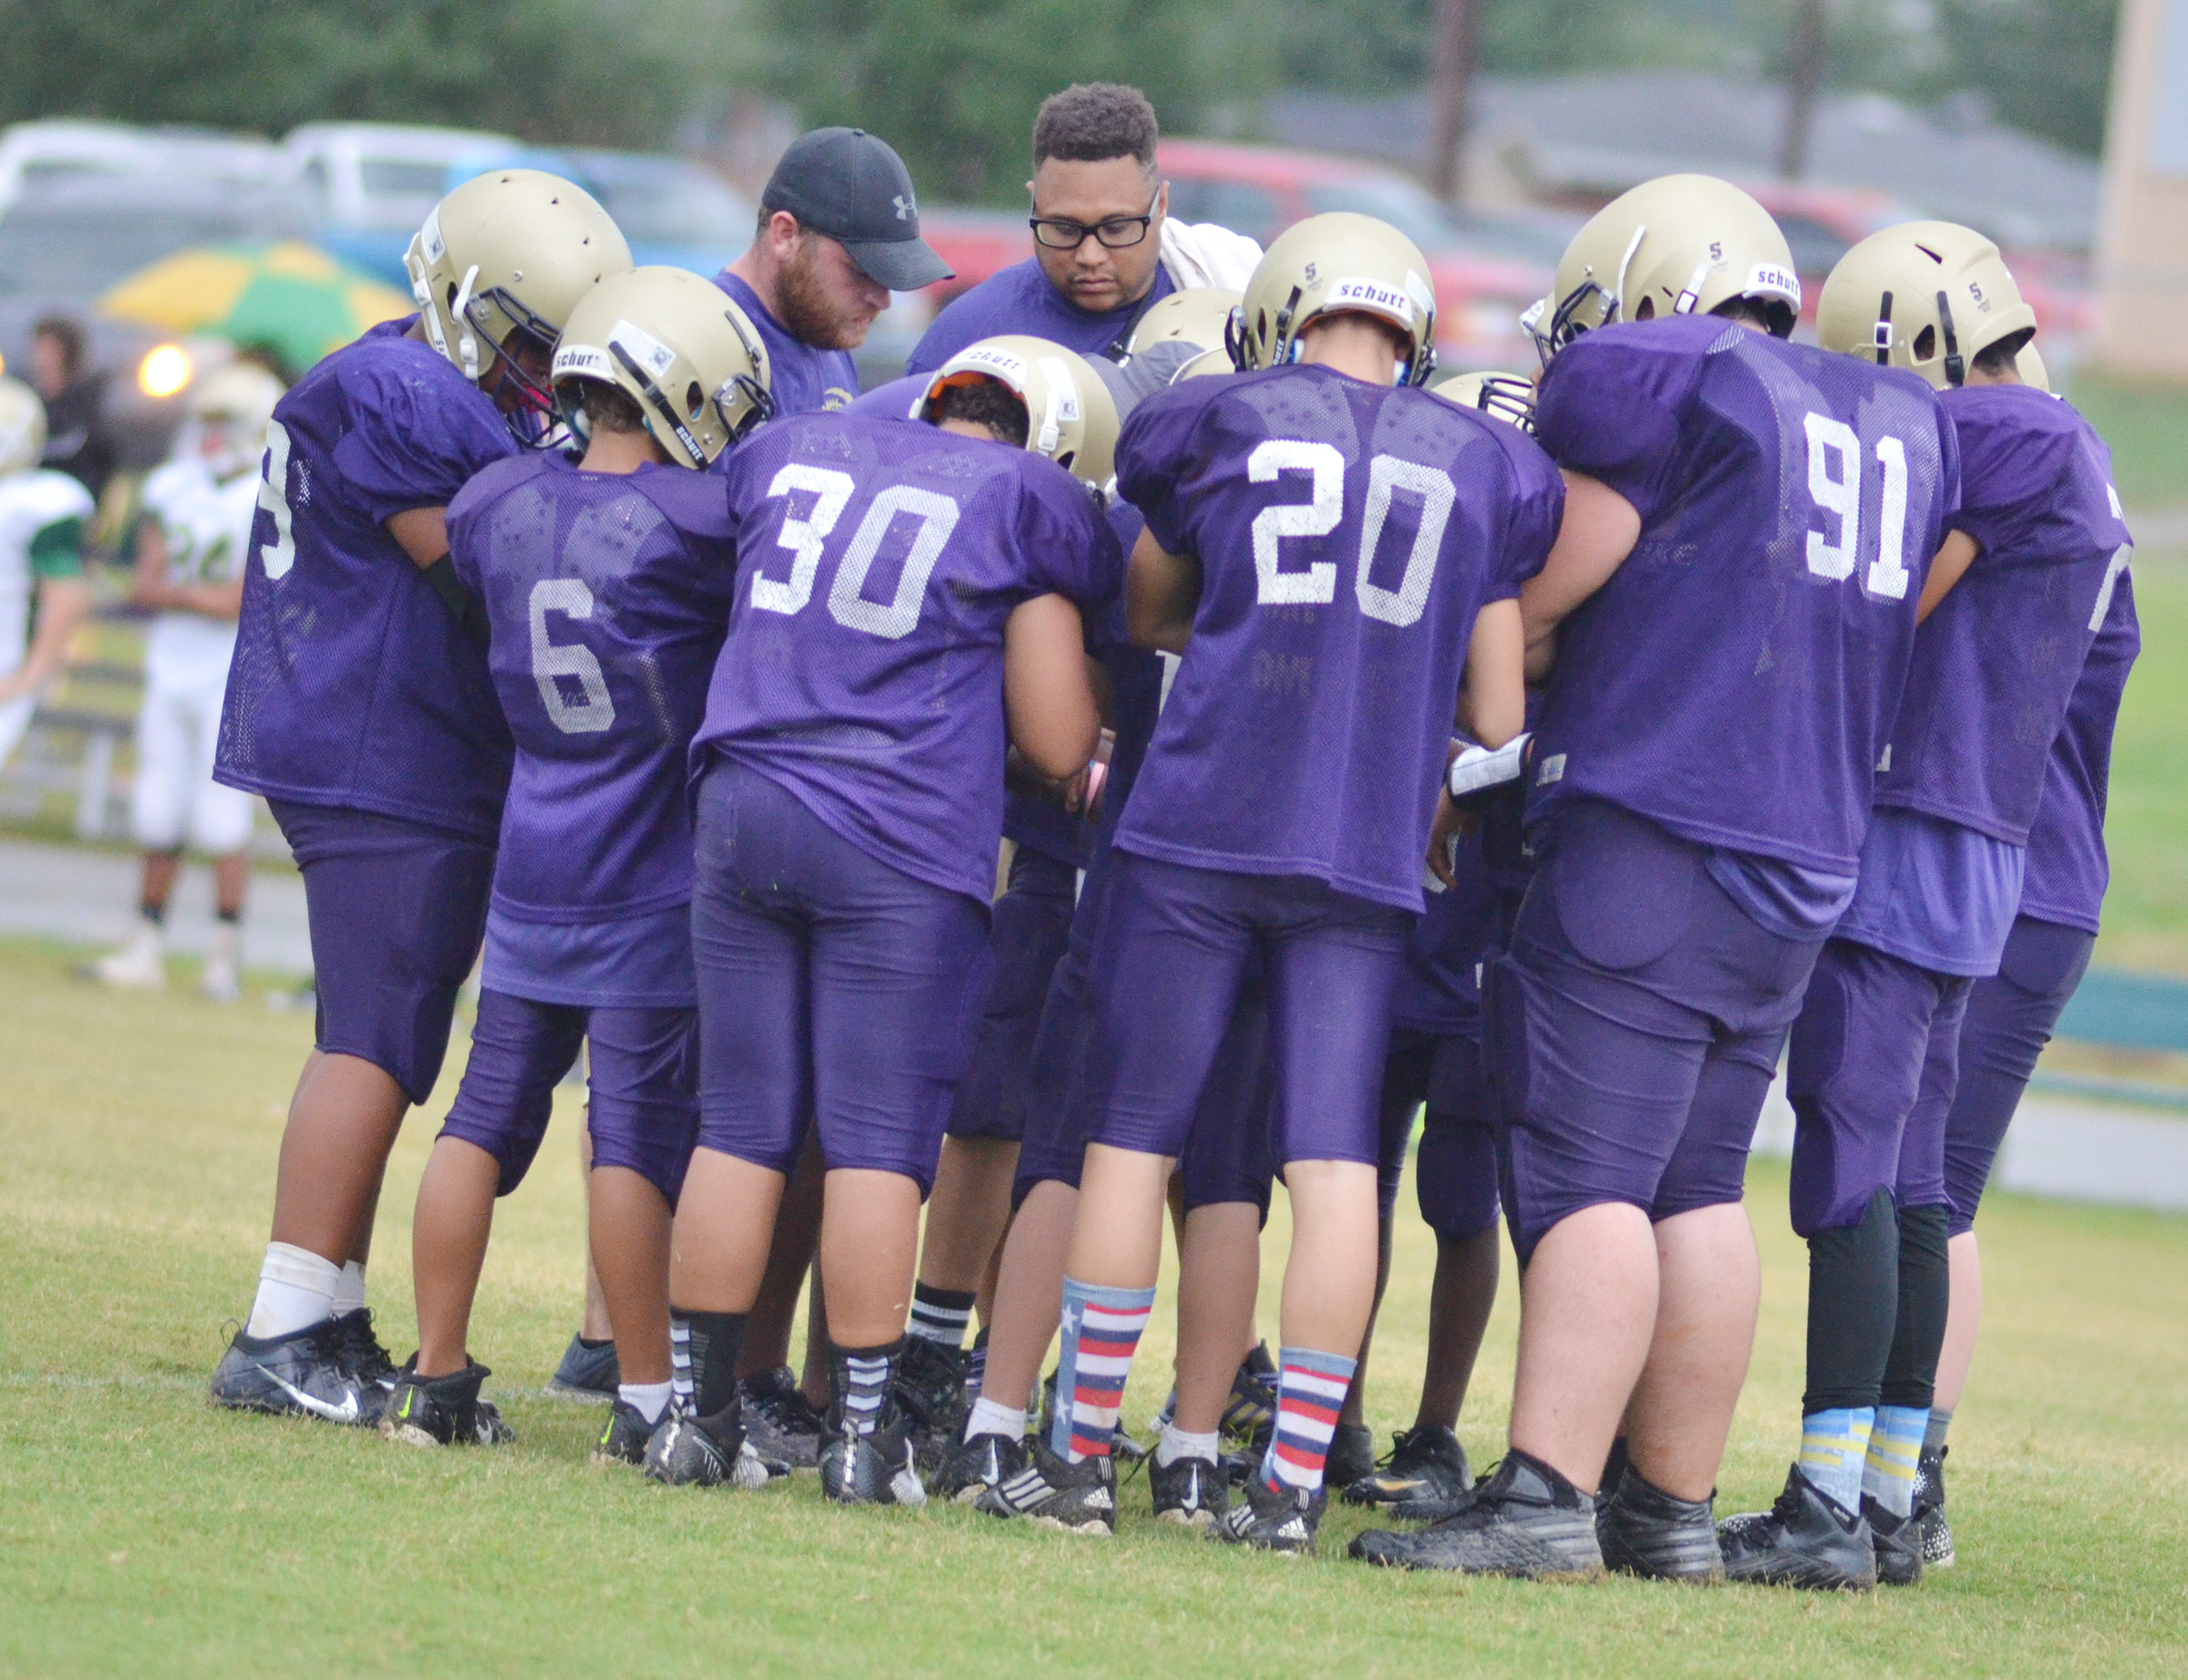 CMS football players huddle before a play.